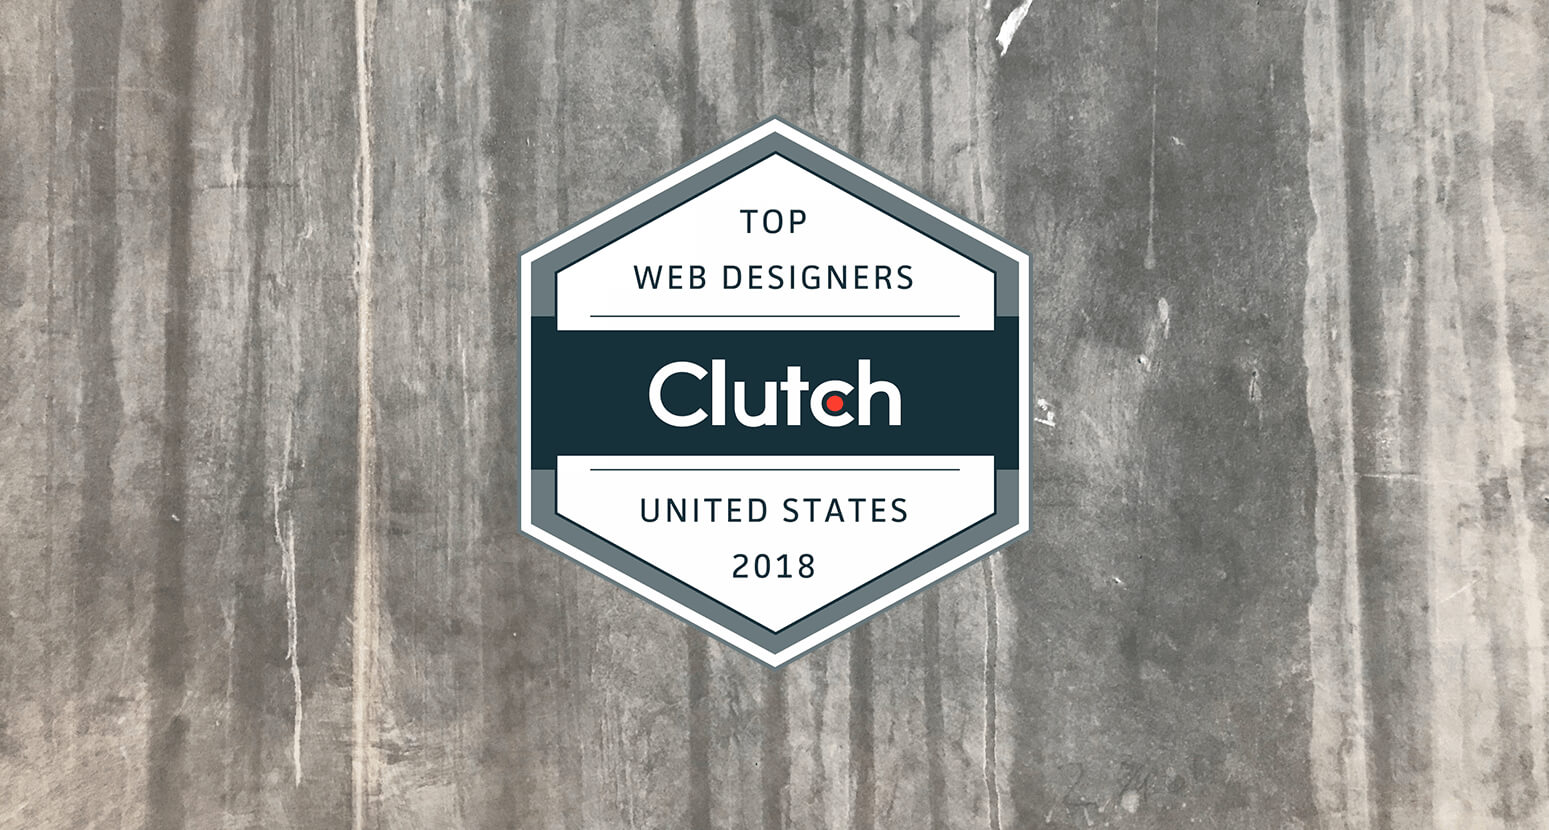 Gauge Name Top Web Designer in the United States by Clutch 2018